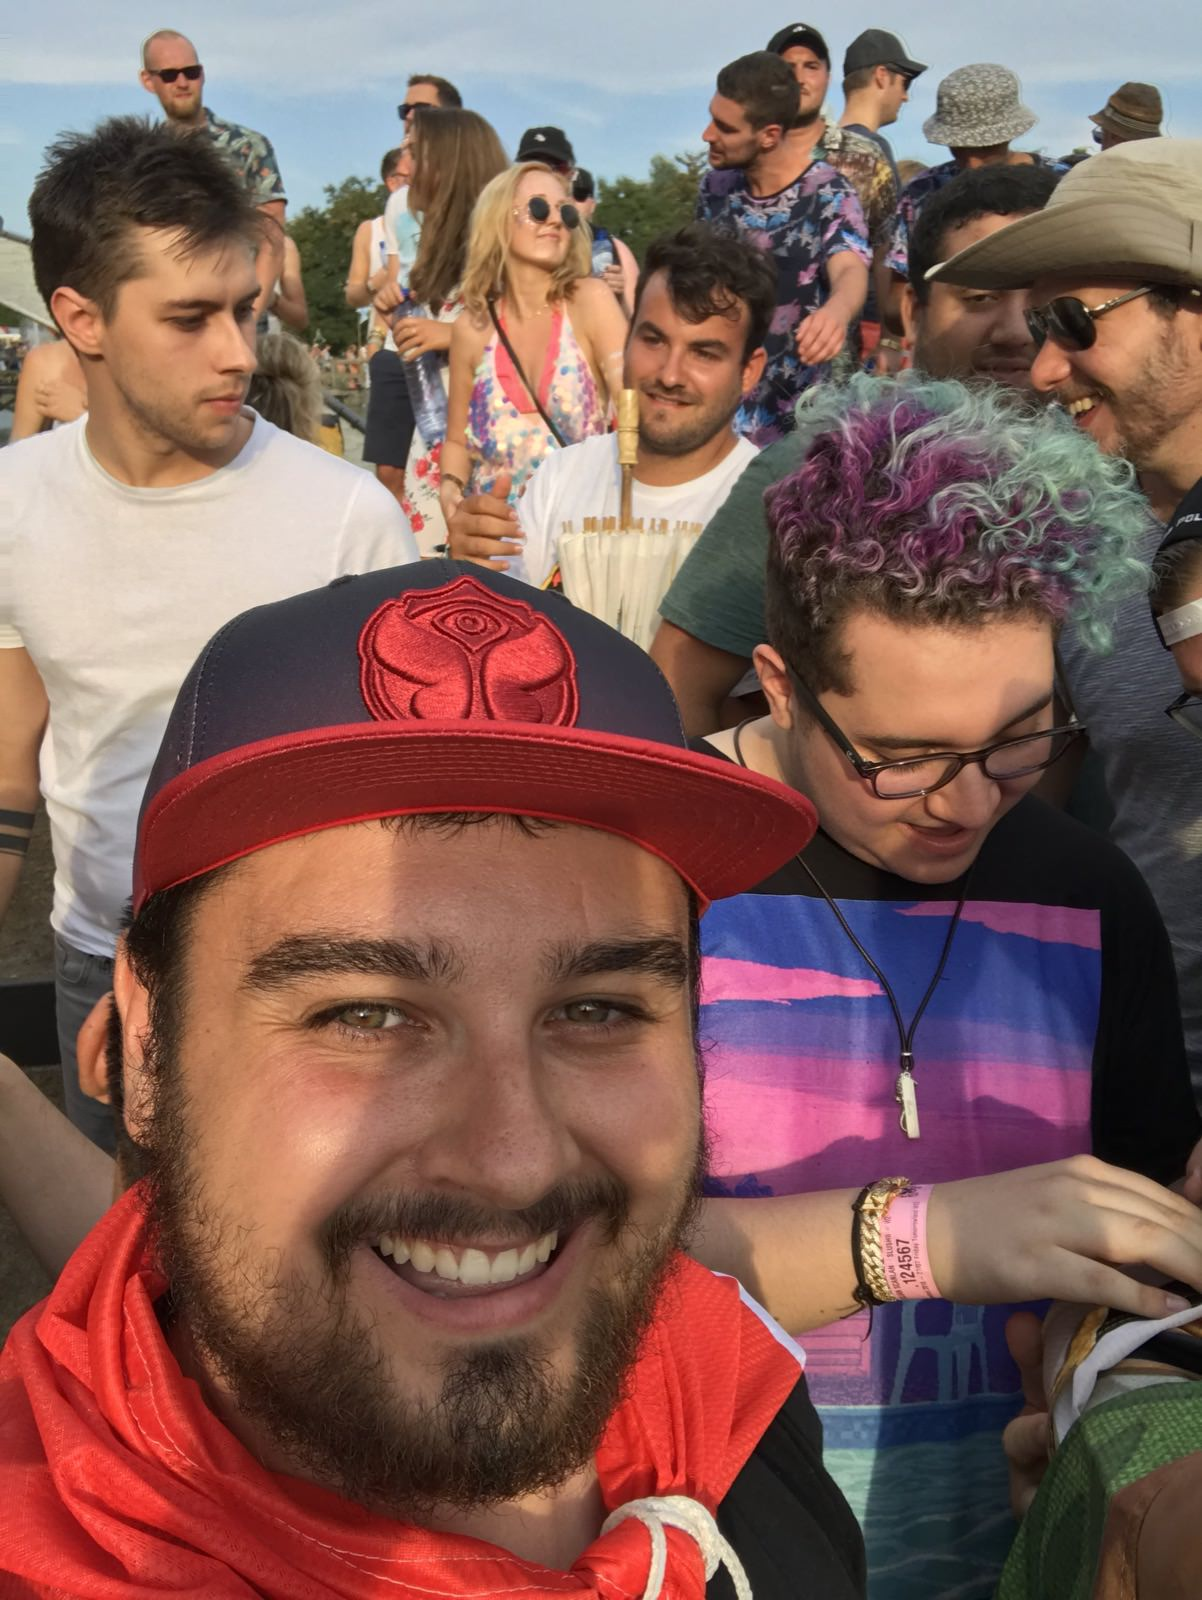 Meeting Slushii